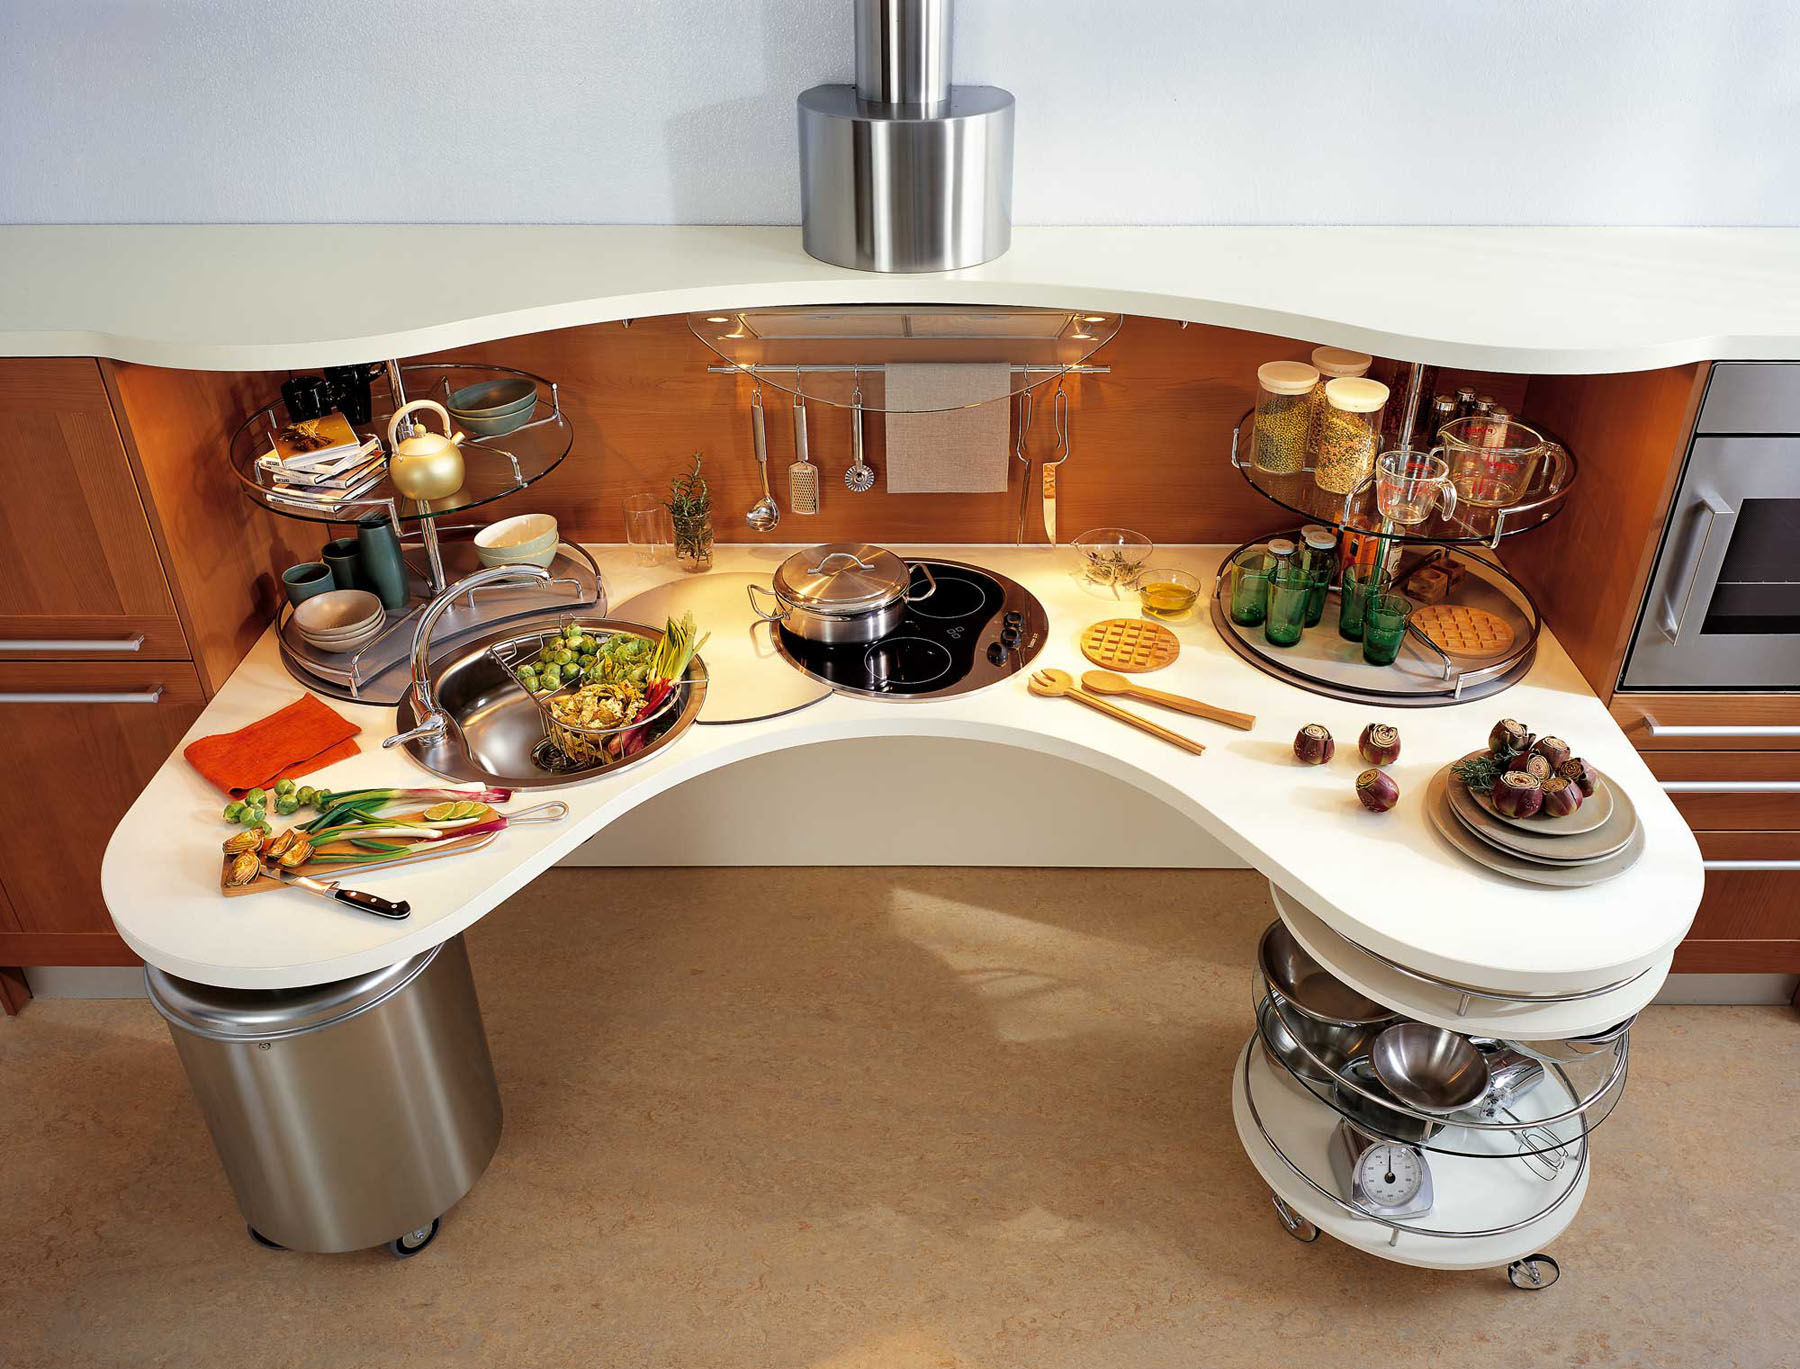 Ergonomic Italian Kitchen Design Suitable For Wheelchair Users Smart Modern